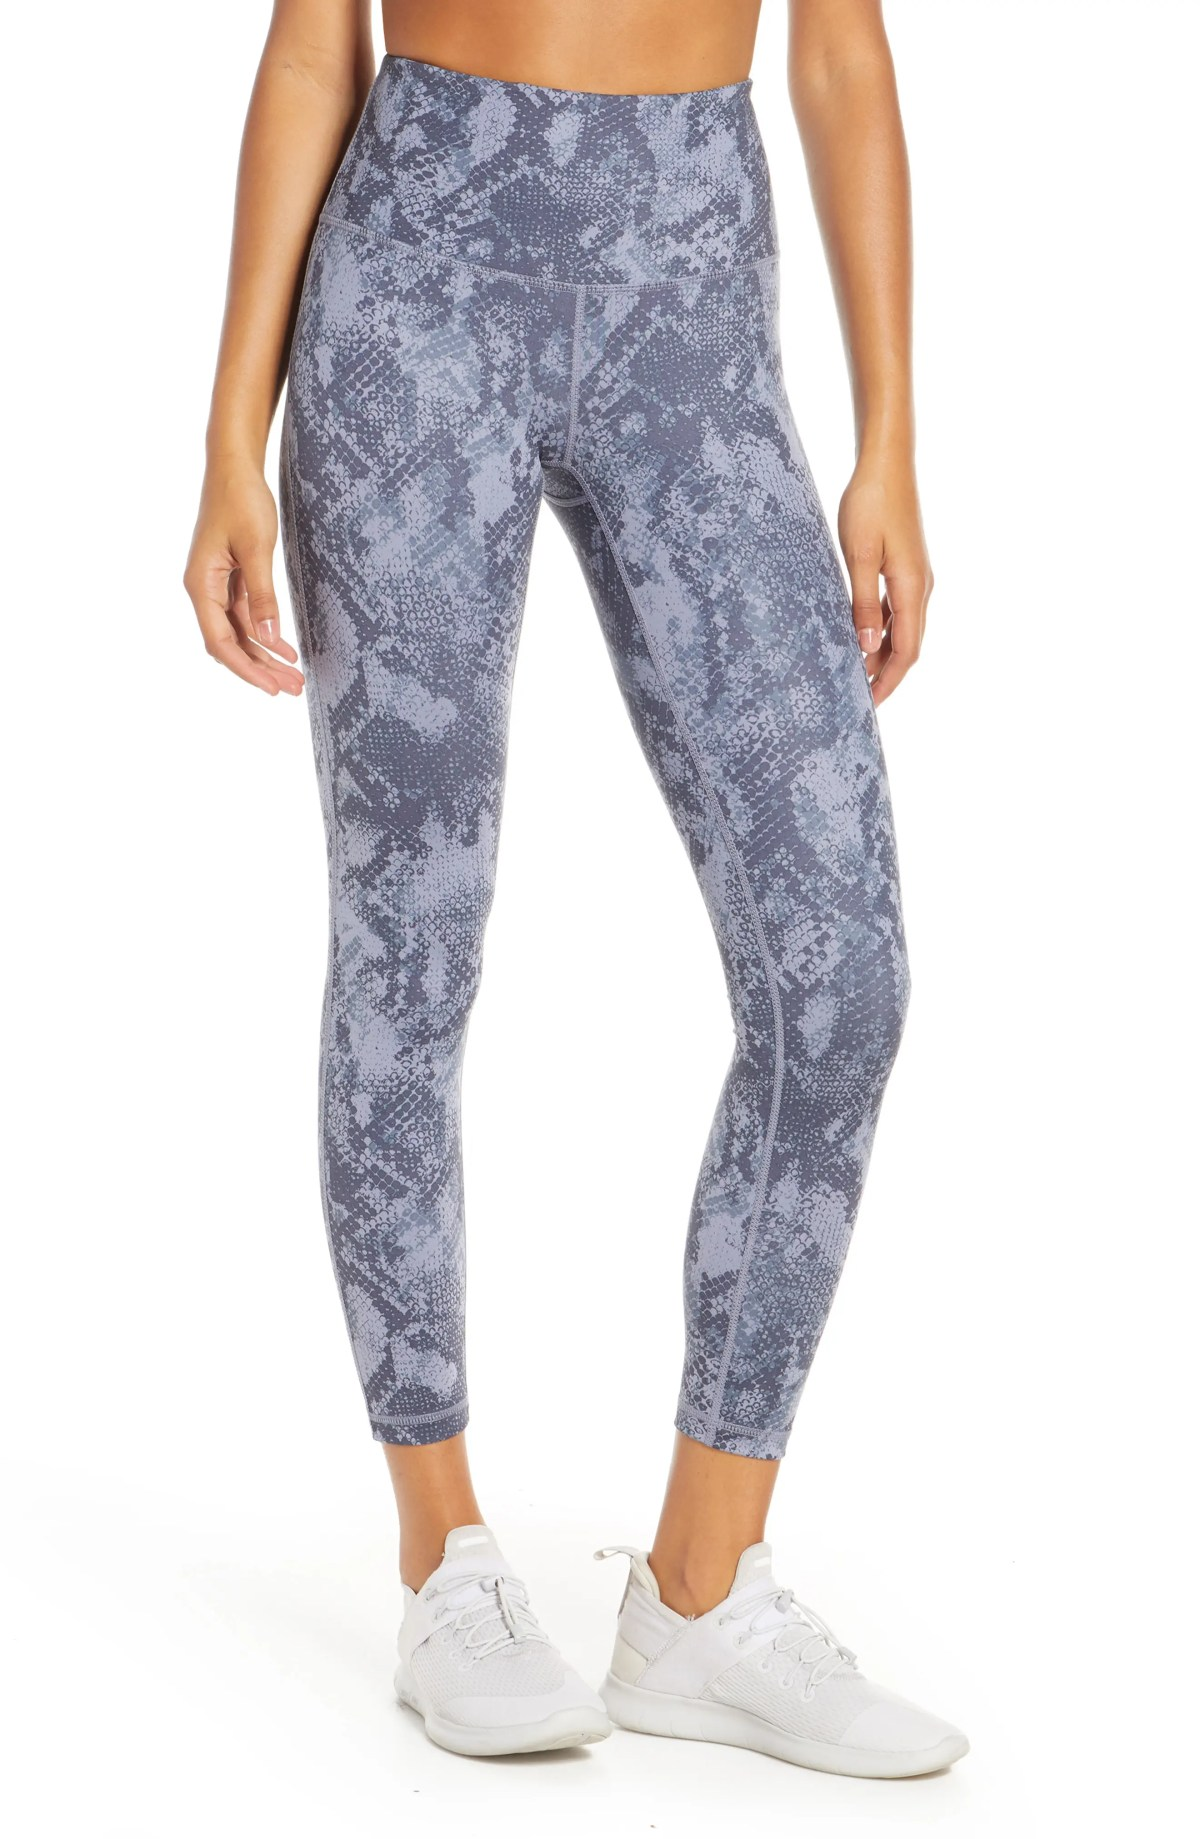 ZELLA Studio Lite High Waist 7/8 Leggings, Main, color, BLUE GRANITE EDEN PRINT